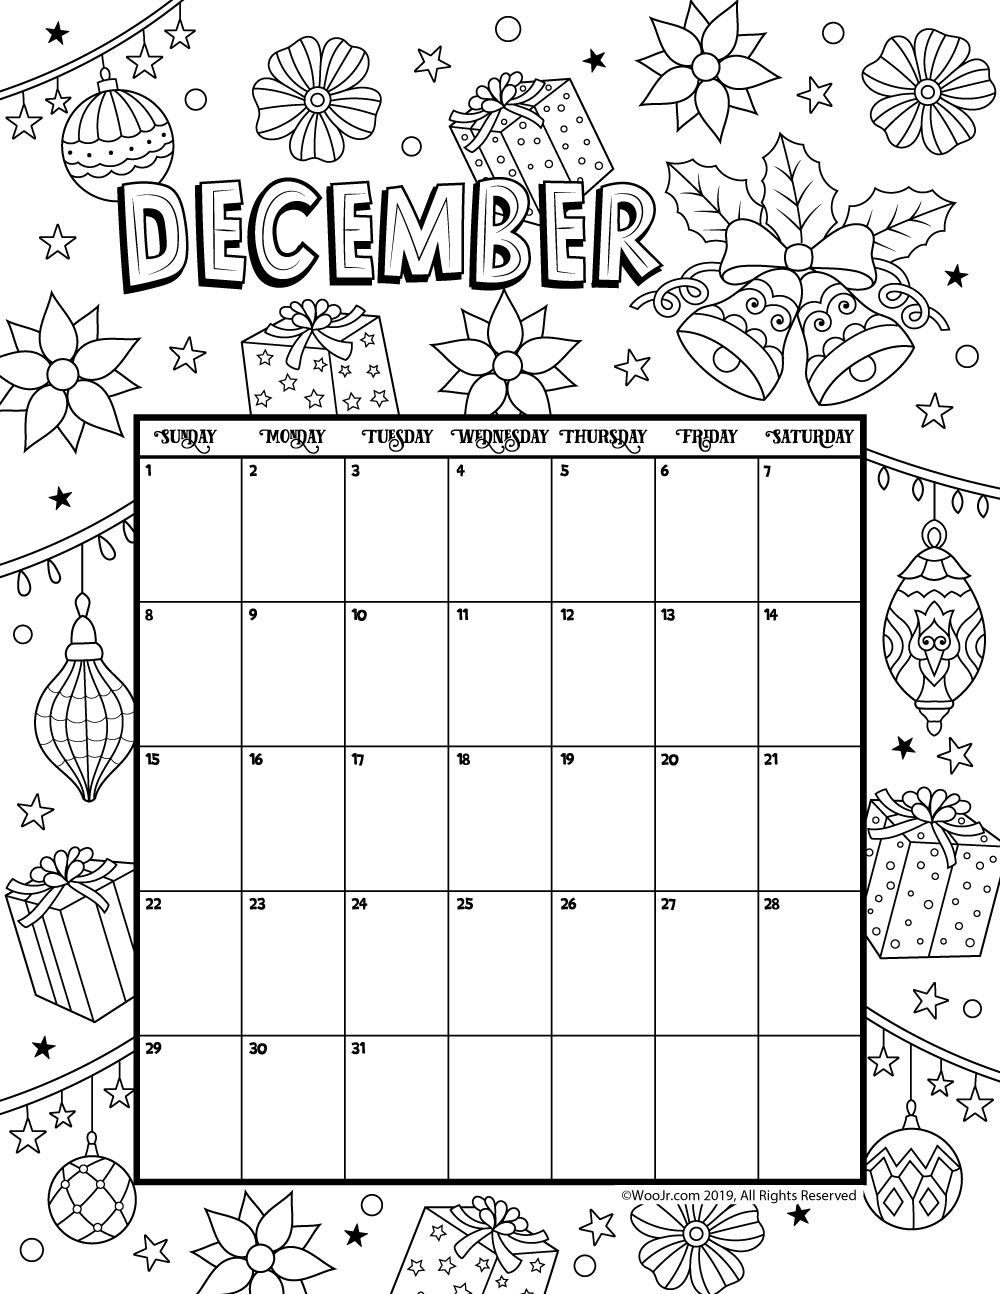 Printable Kids Calendar 2019 December December 2019 Coloring Calendar | Woo! Jr. Kids Activities